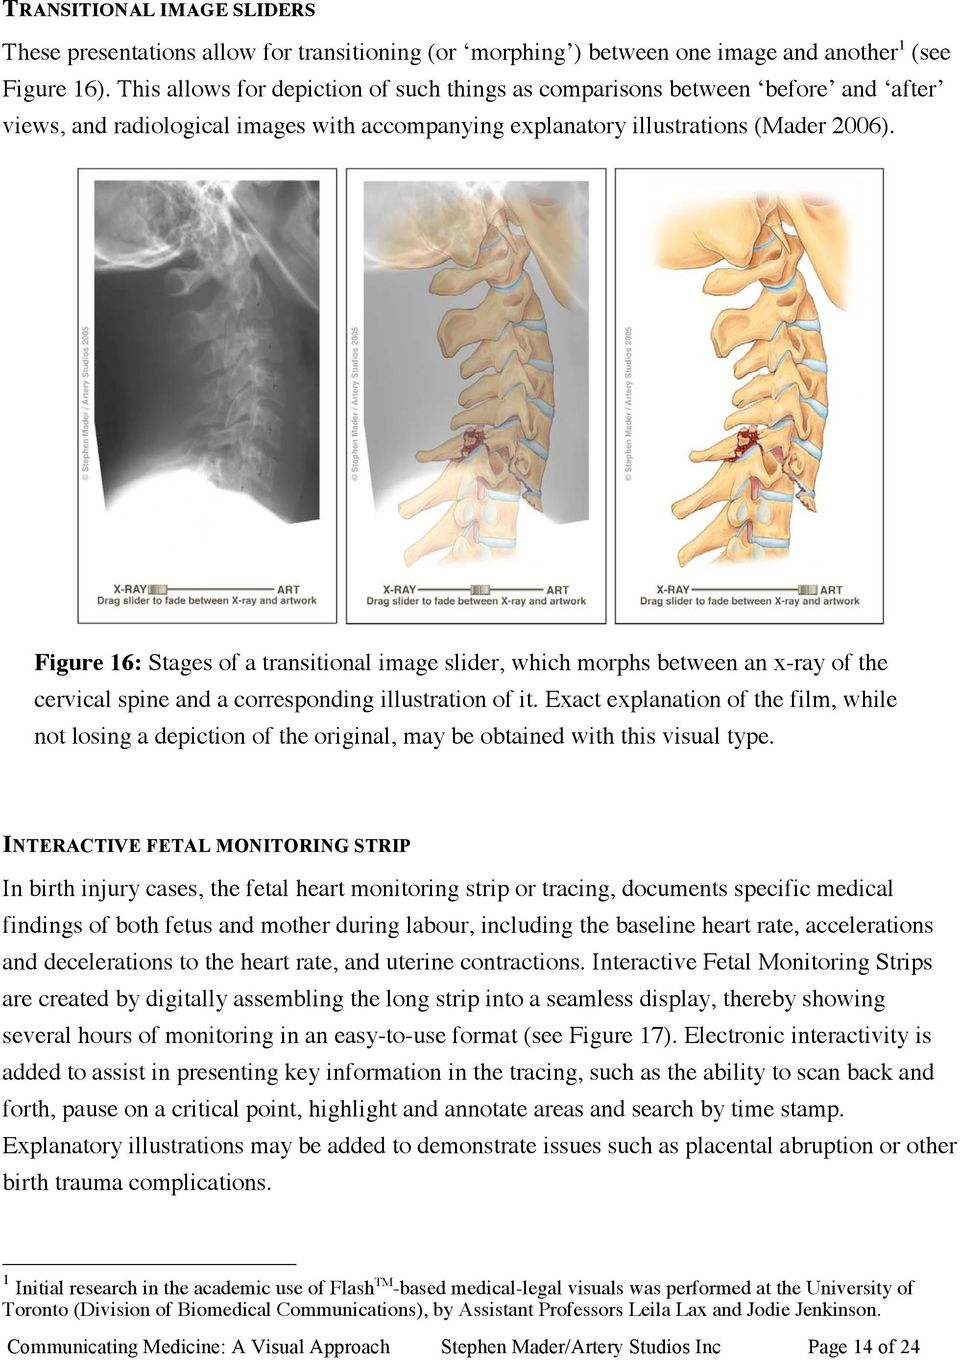 Figure 16: Stages of a transitional image slider, which morphs between an x-ray of the cervical spine and a corresponding illustration of it.